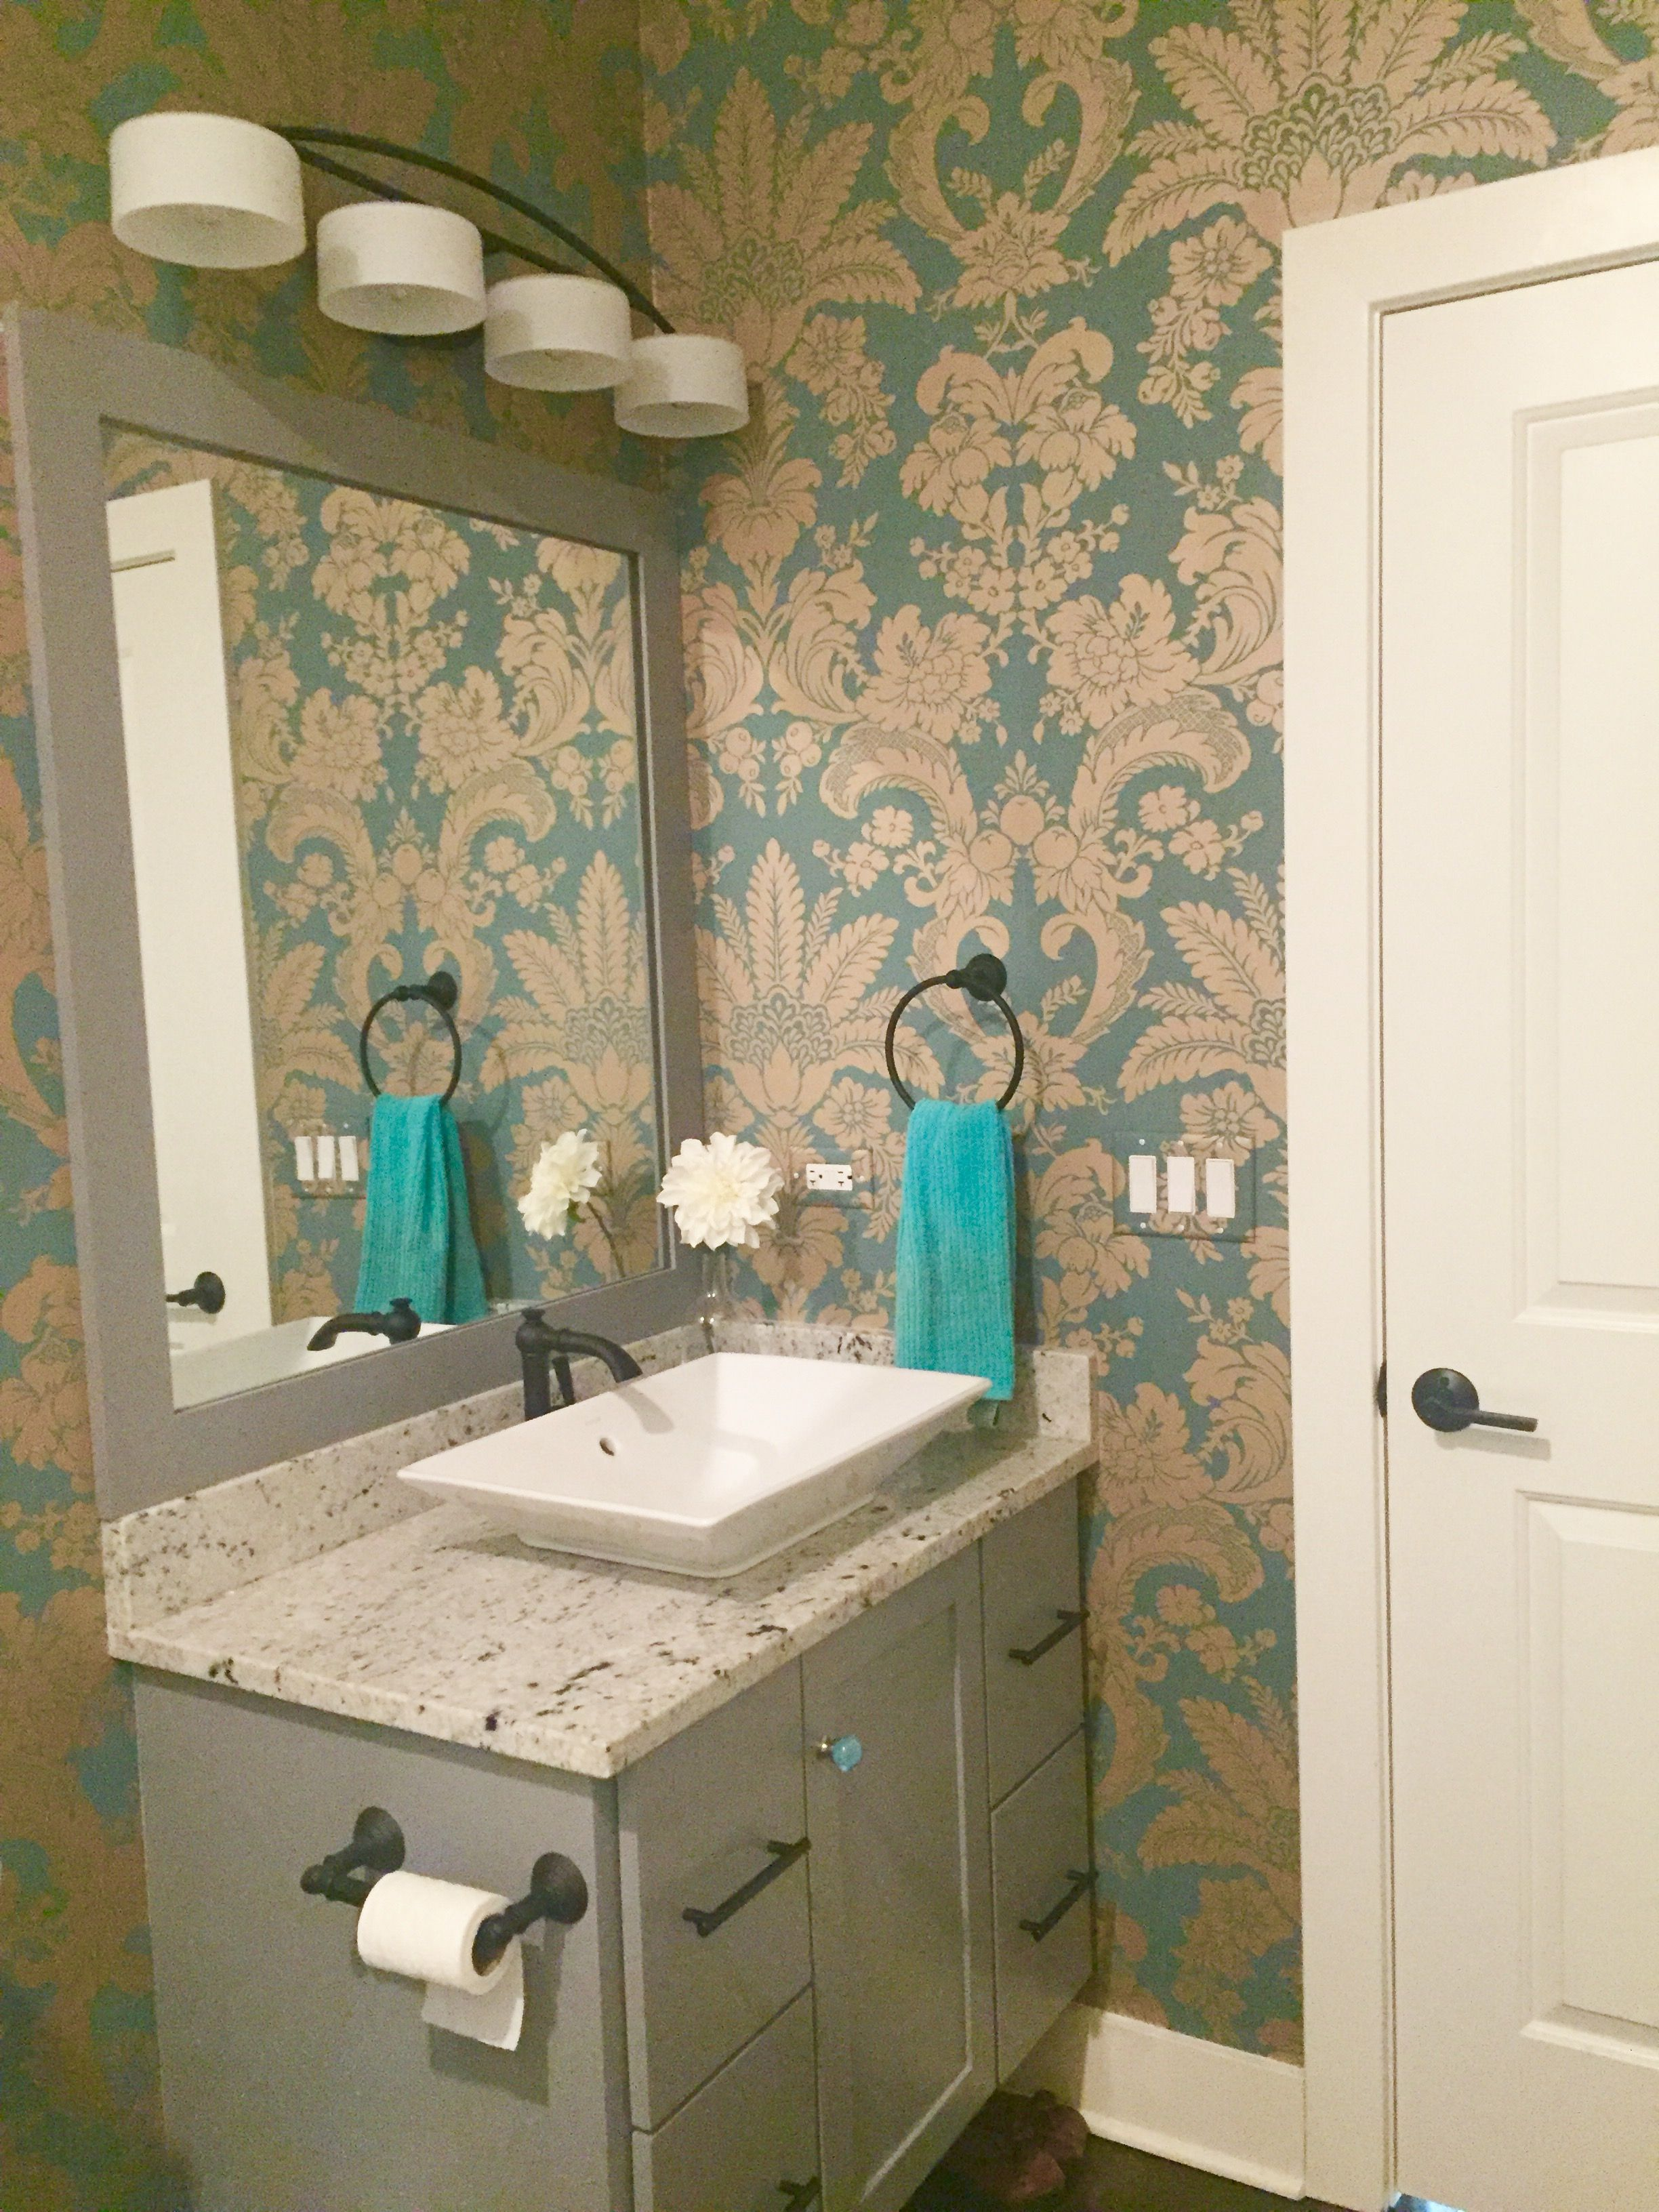 Teal/turquoise damask wallpaper with gold foil Damask